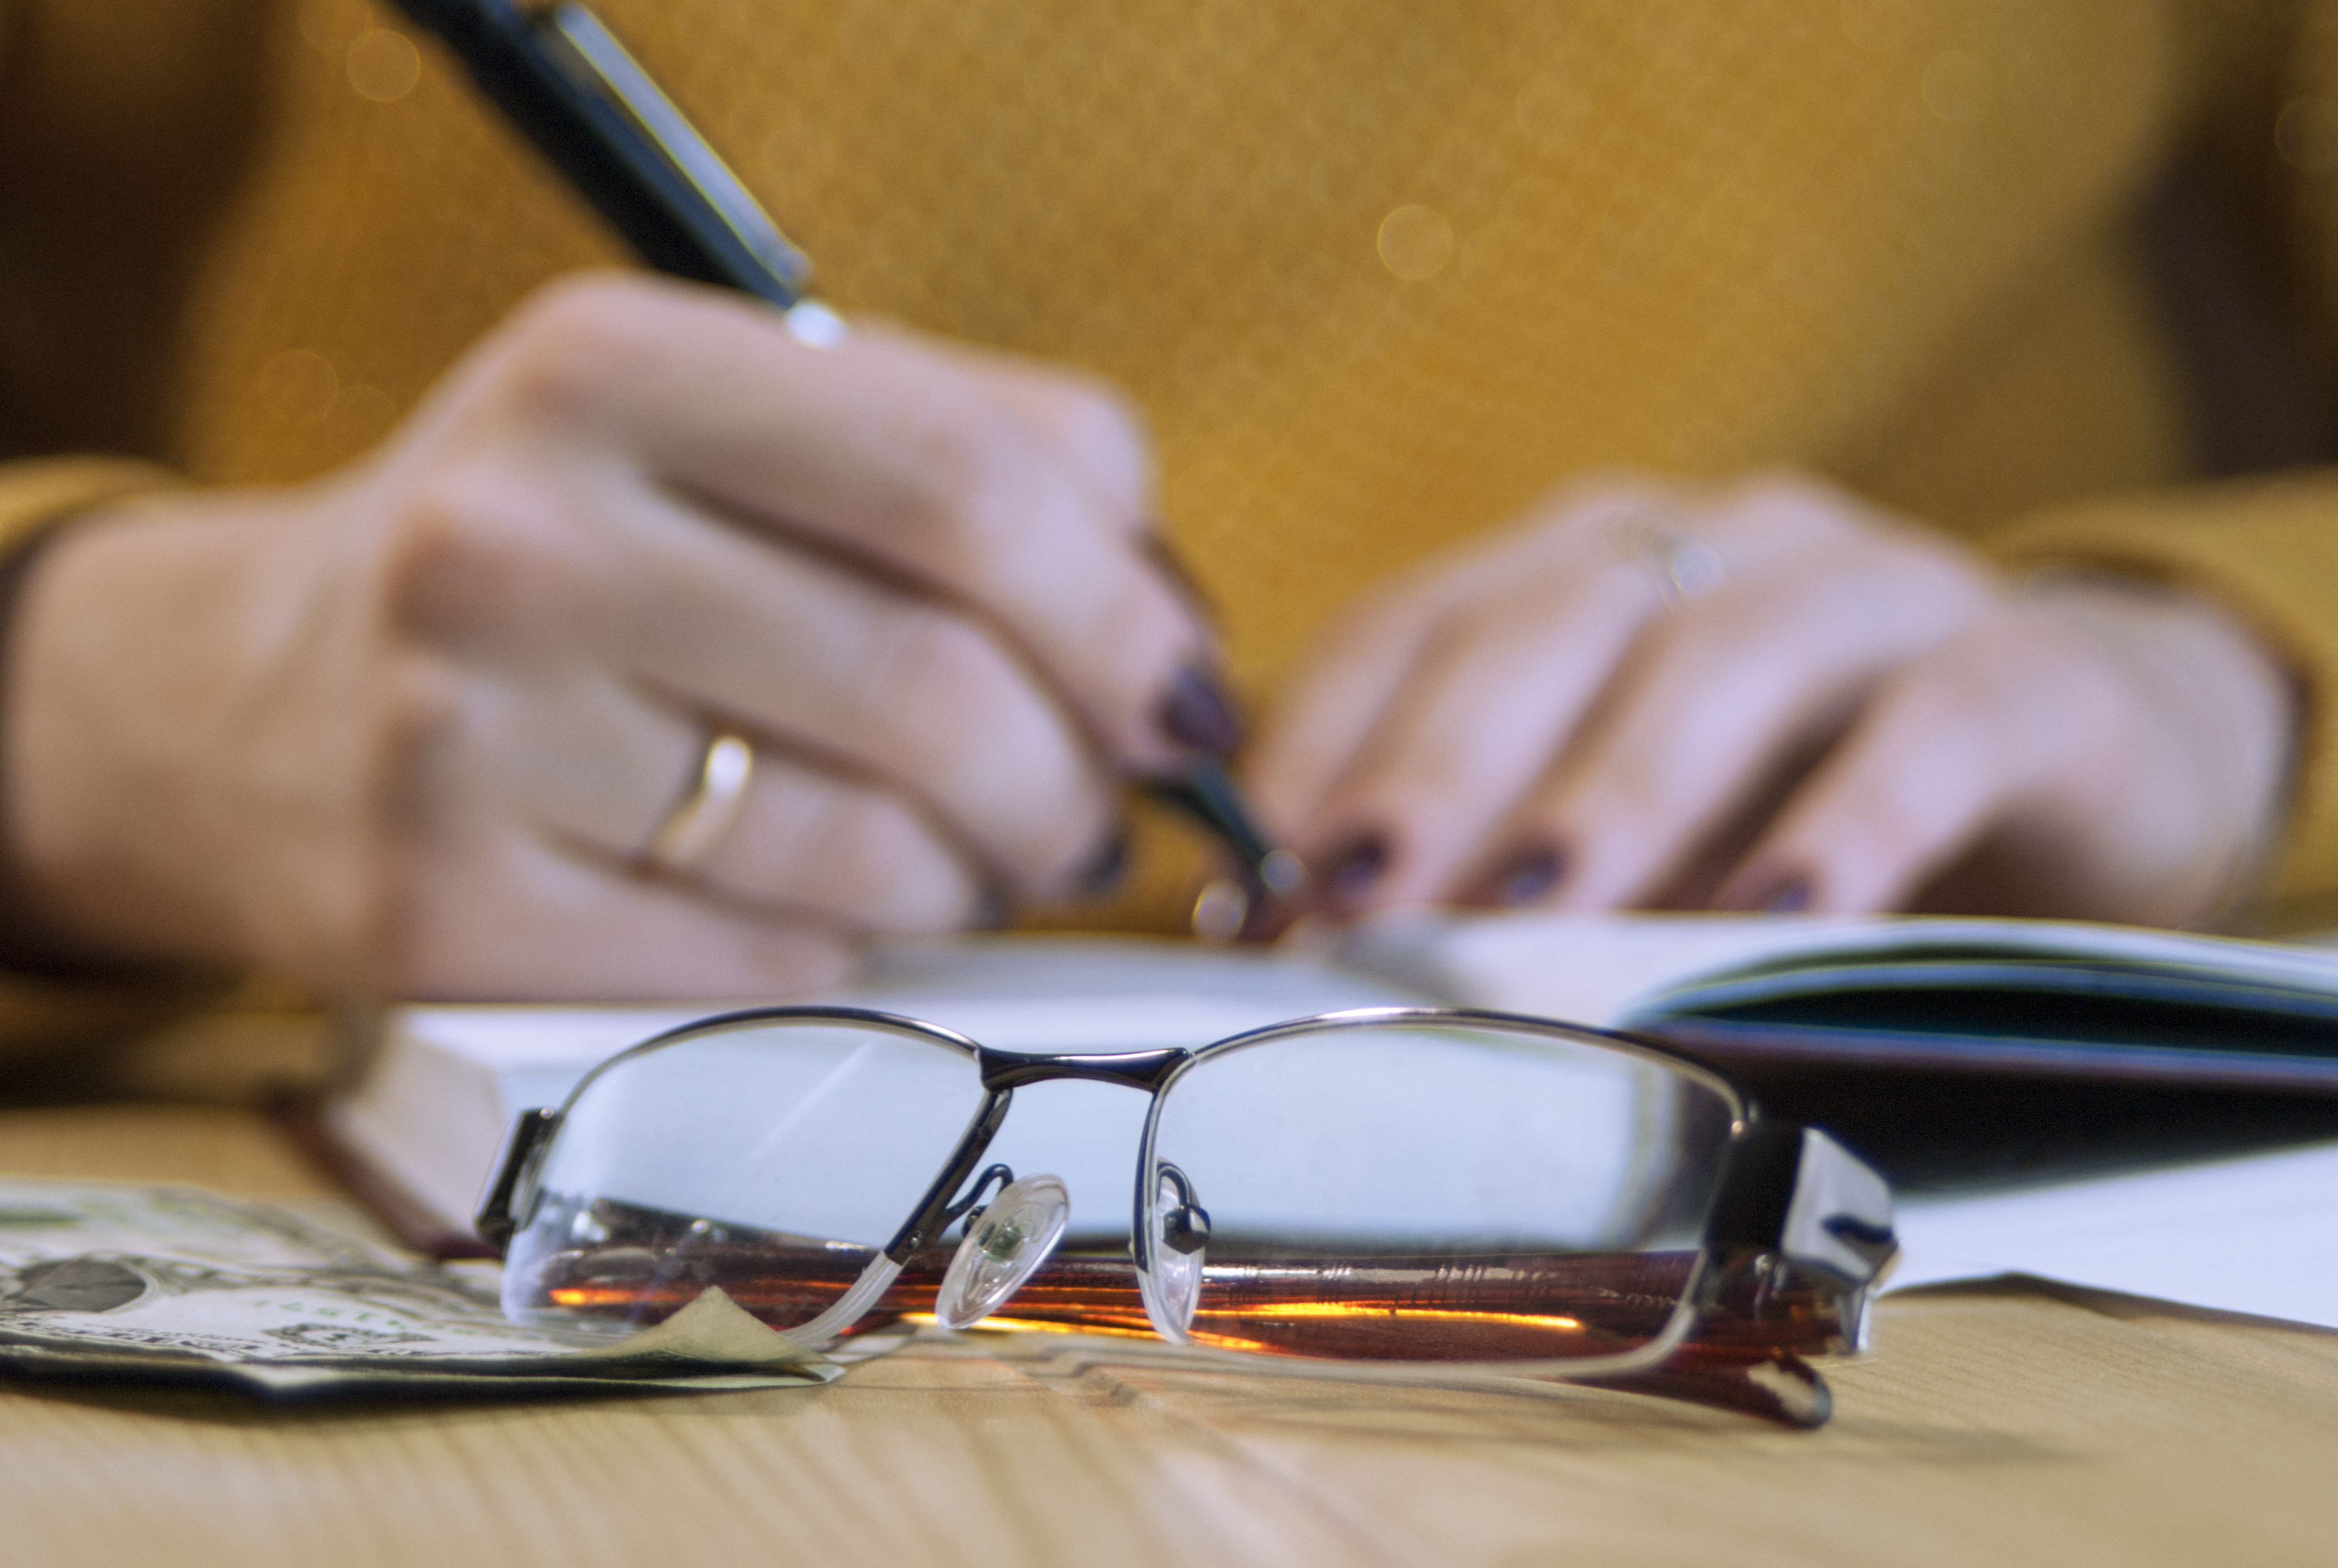 Hands writing in a journal with glasses next to them on a desk.